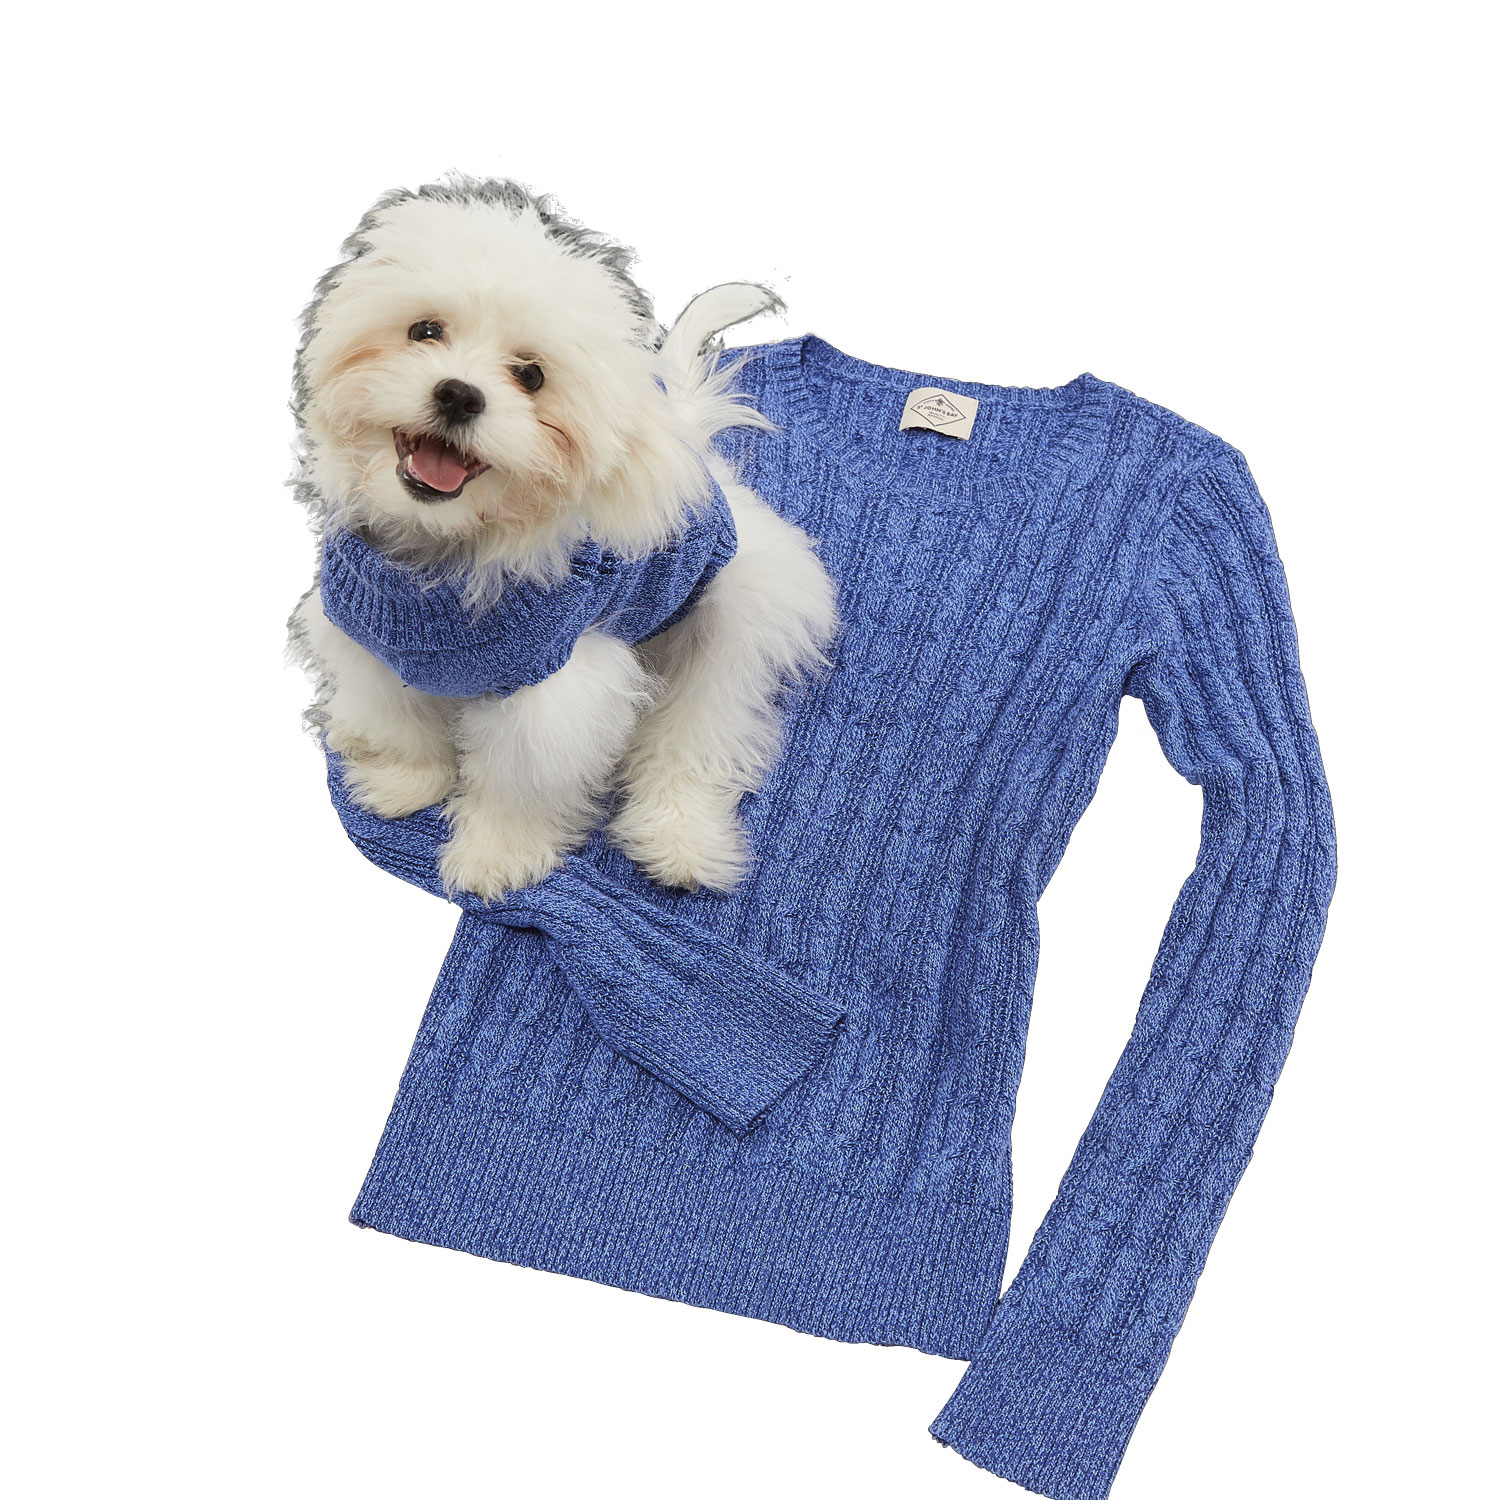 Dog and matching sweater